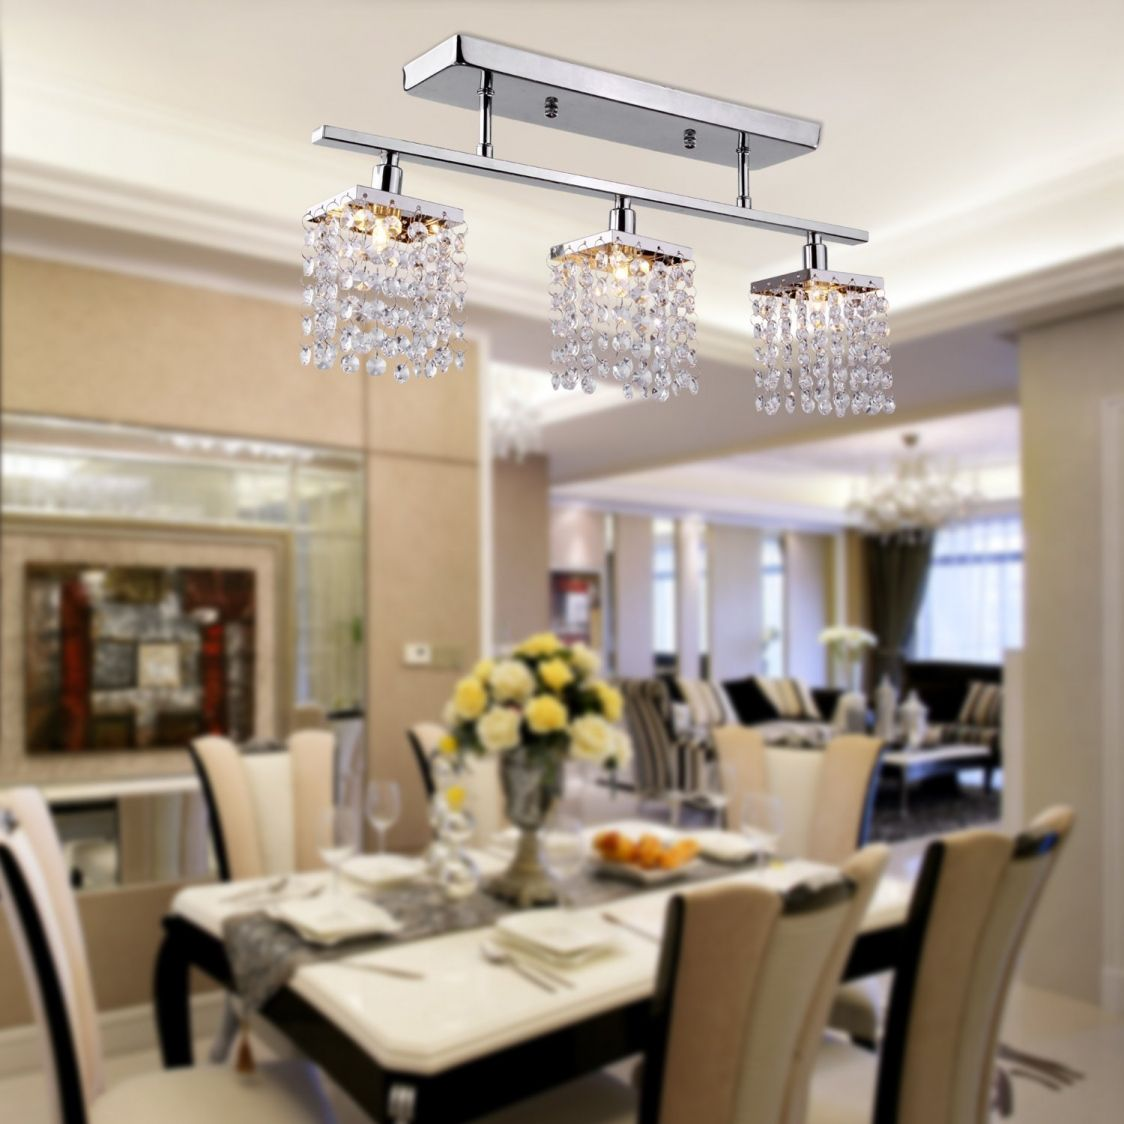 Dining Room Flush Mount Lighting  Best Quality Furniture Check Enchanting Dining Room Flush Mount Lighting Decorating Design